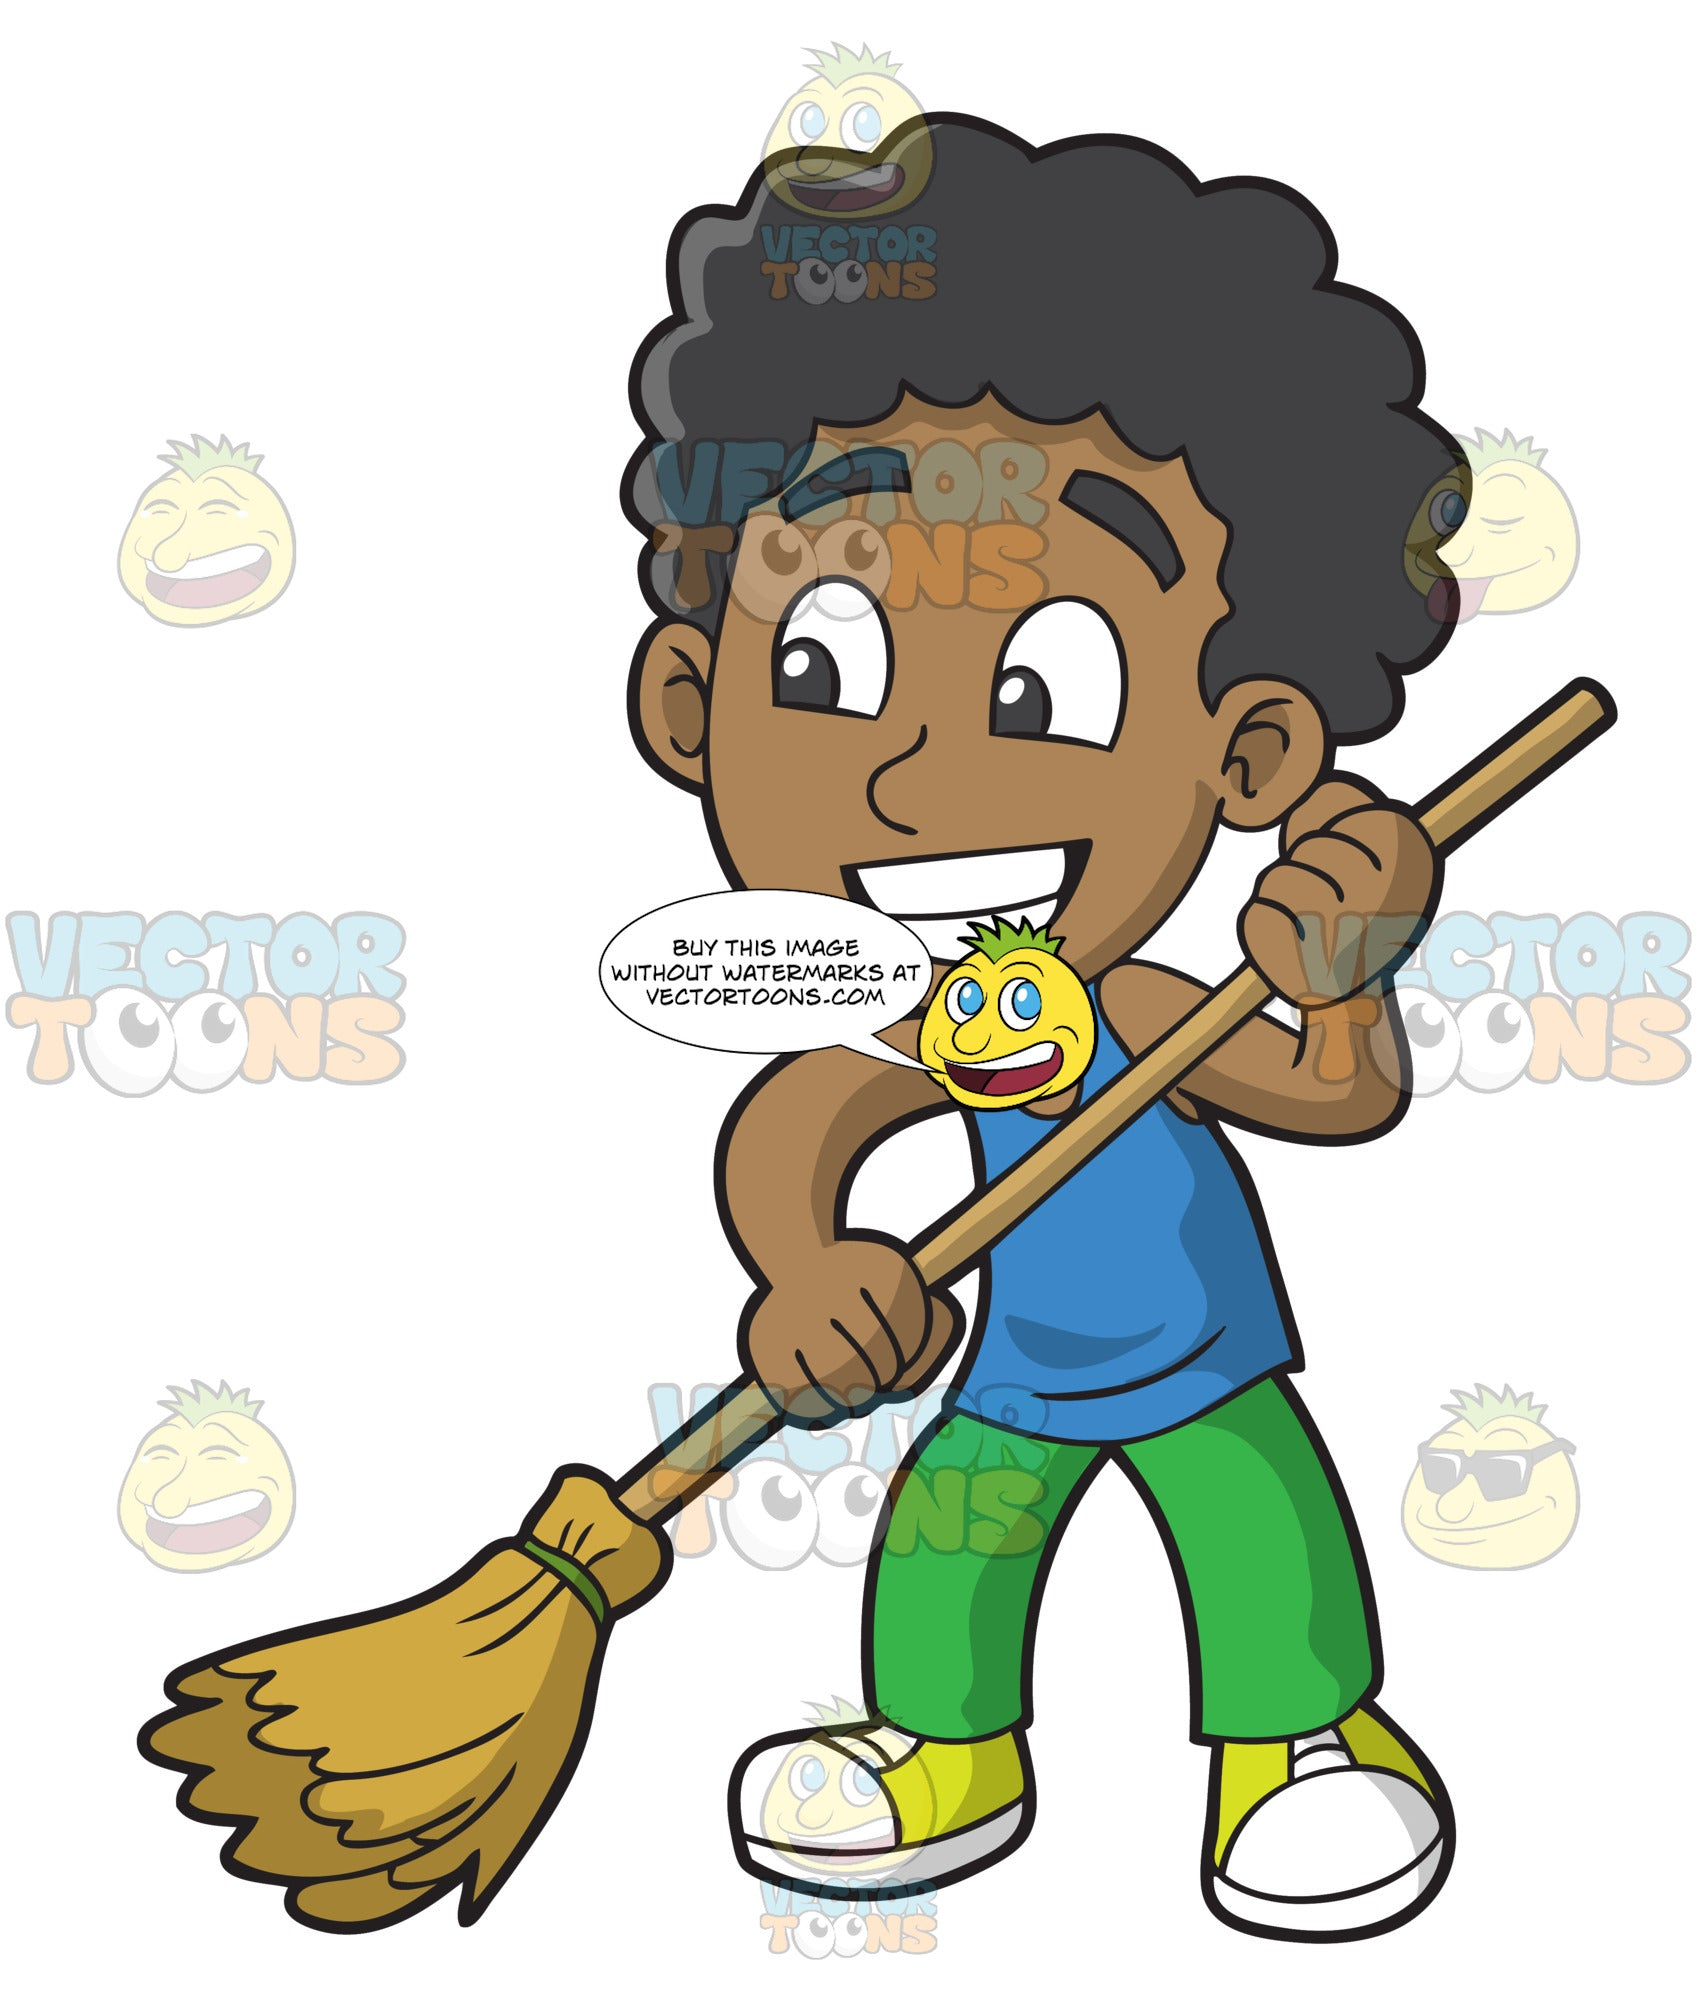 a black boy sweeping the floor clipart cartoons by vectortoons a black boy sweeping the floor clipart cartoons by vectortoons